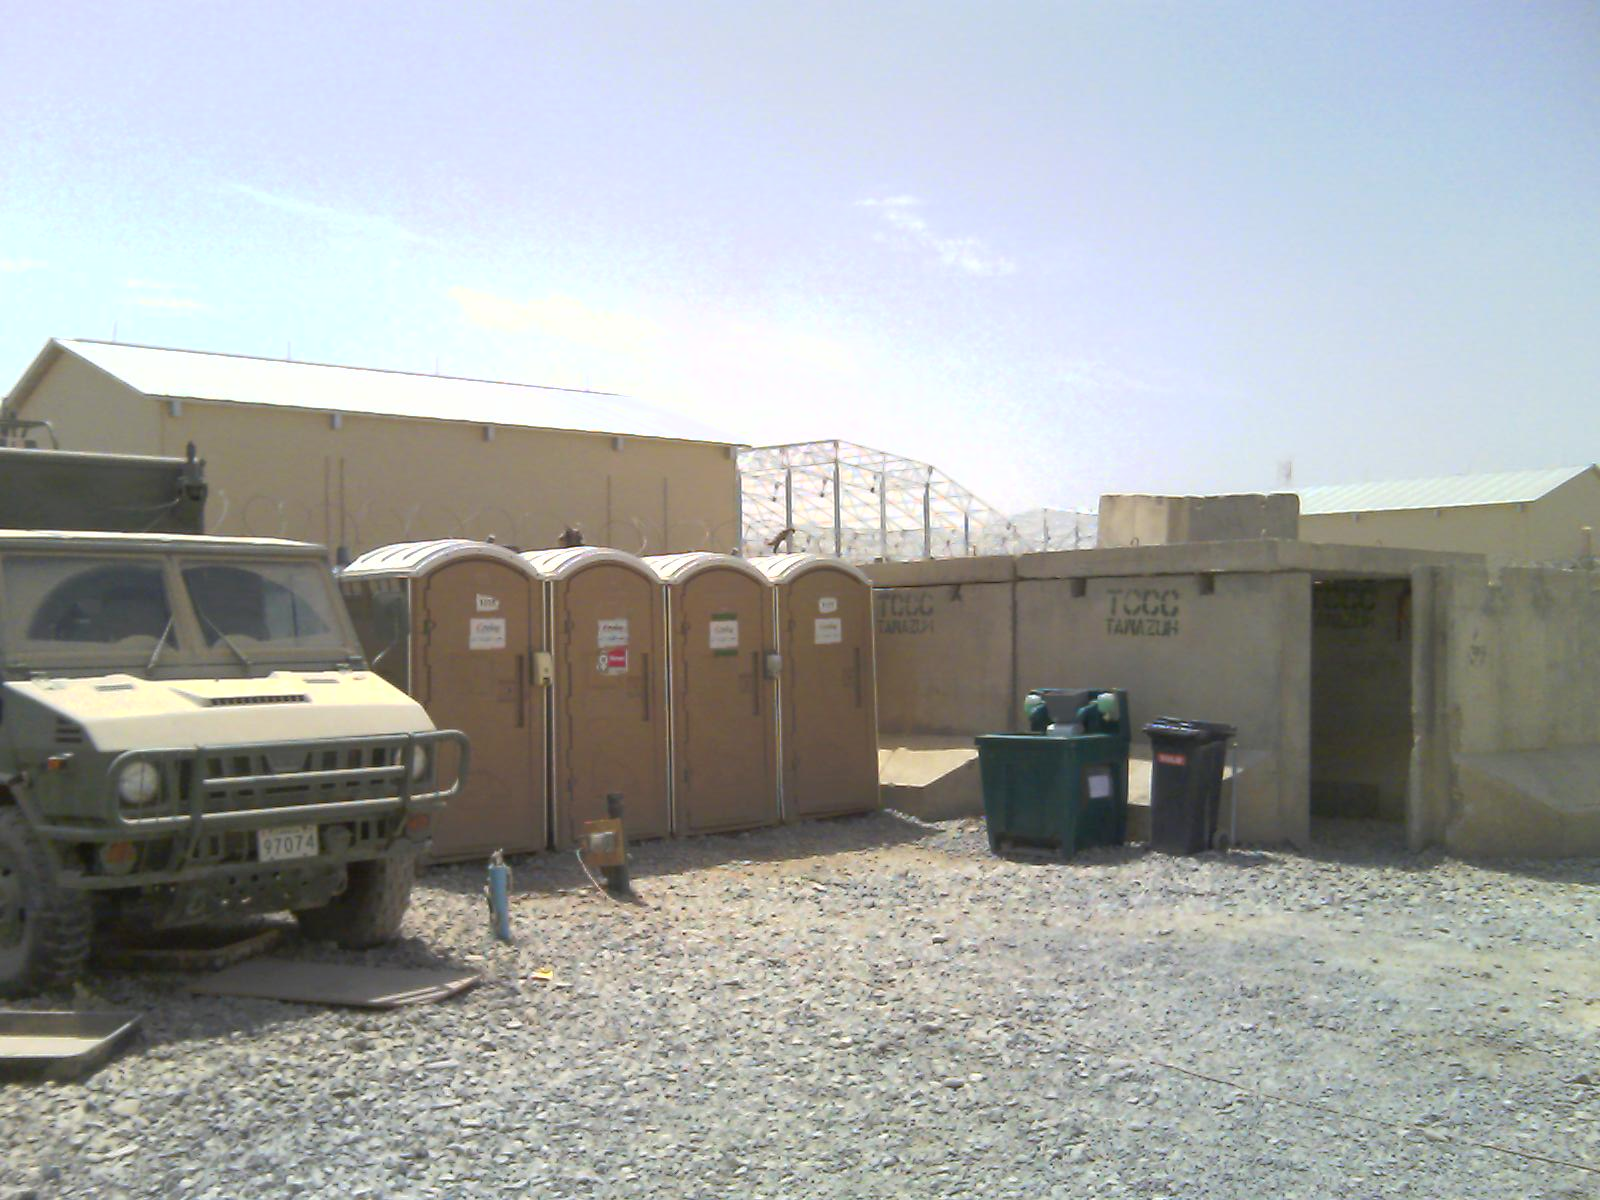 dating kandahar airfield Troops may reveal military secrets and put heat map from kandahar airfield in and people using dating applications are among other.